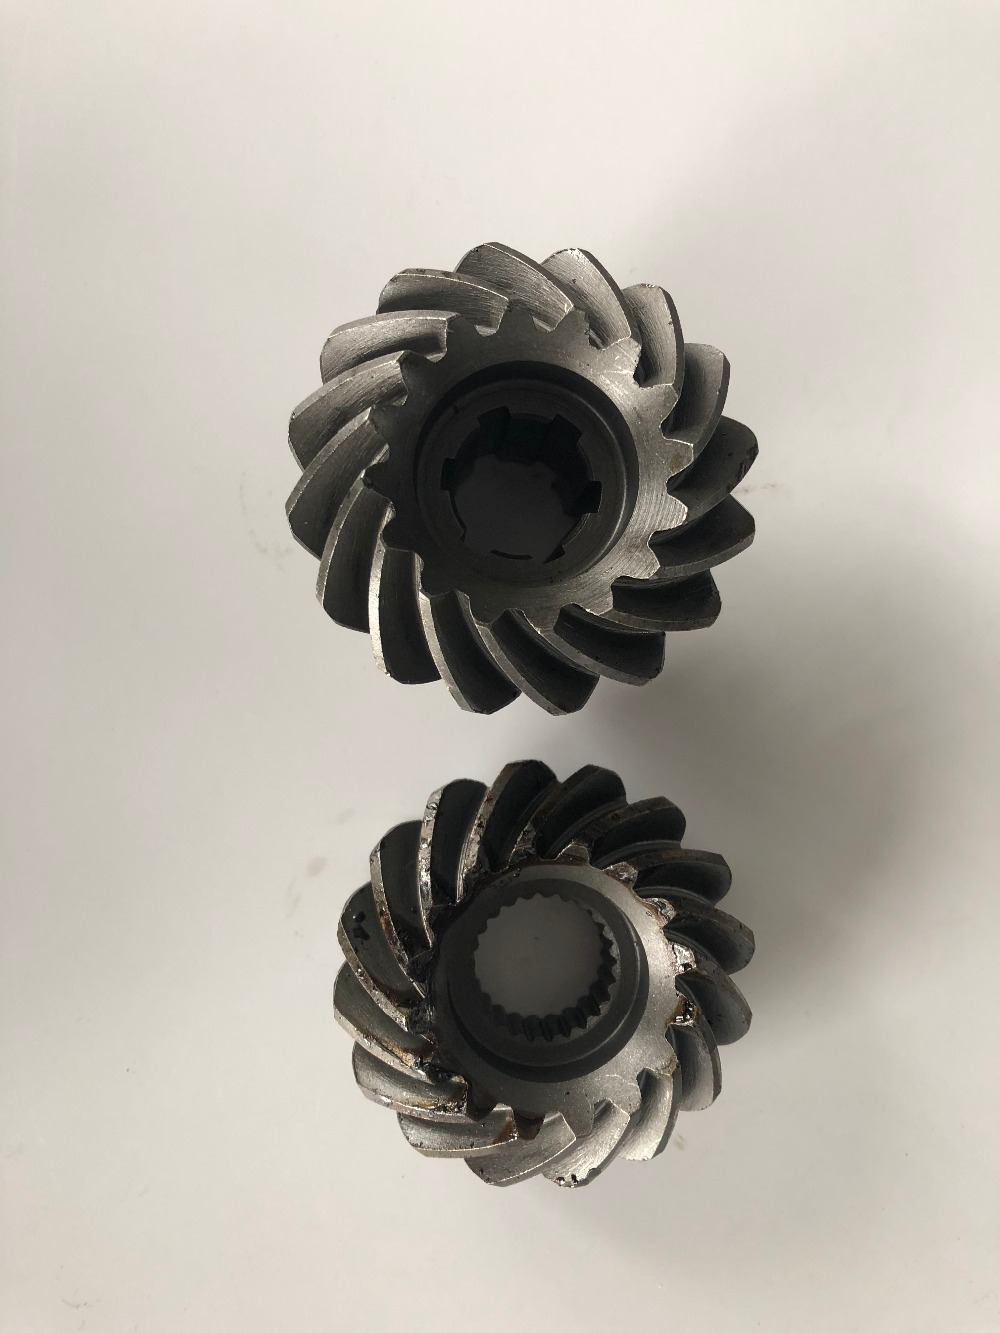 Drive bevel gear master and slave gear For Kazuma Xinyang 500 500CC Jaguar atv utv engine parts